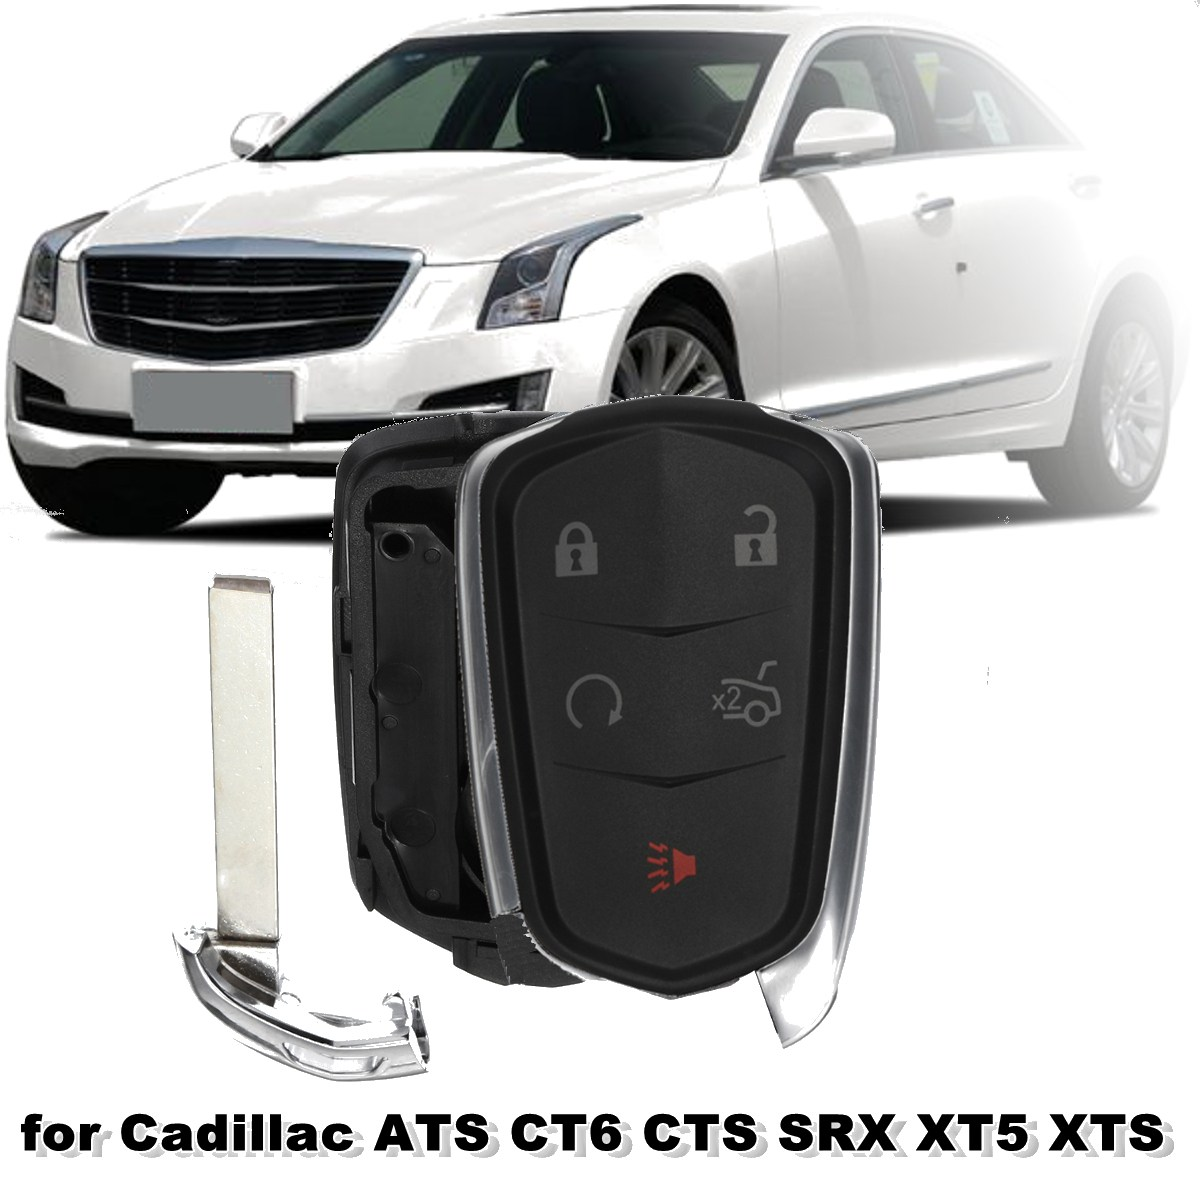 Car Remote Key Fob Case Holder Cover Protect Shell For Cadillac ATS XTS CTS SRX